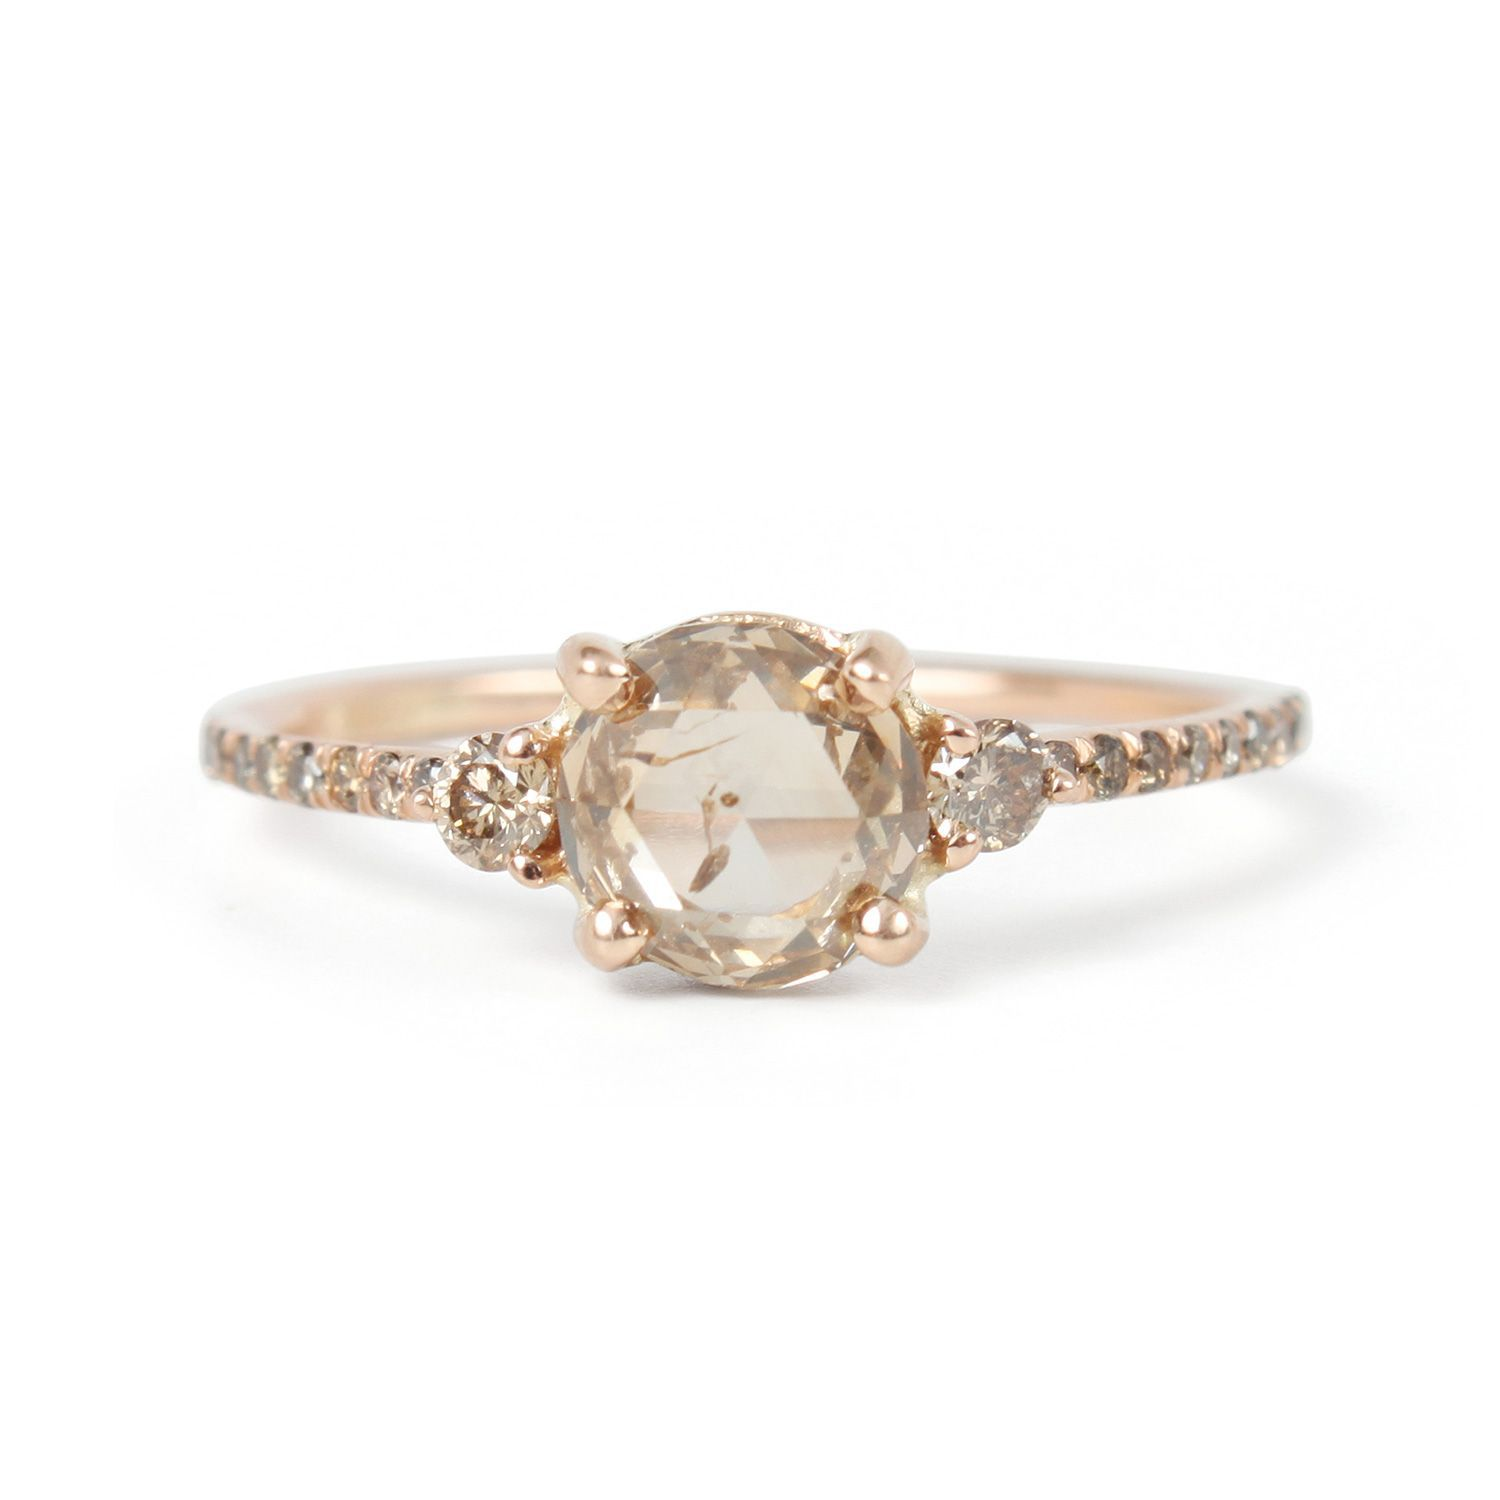 683883c389042 5 Beautiful Alternative Engagement Ring Stones if You're On a Budget